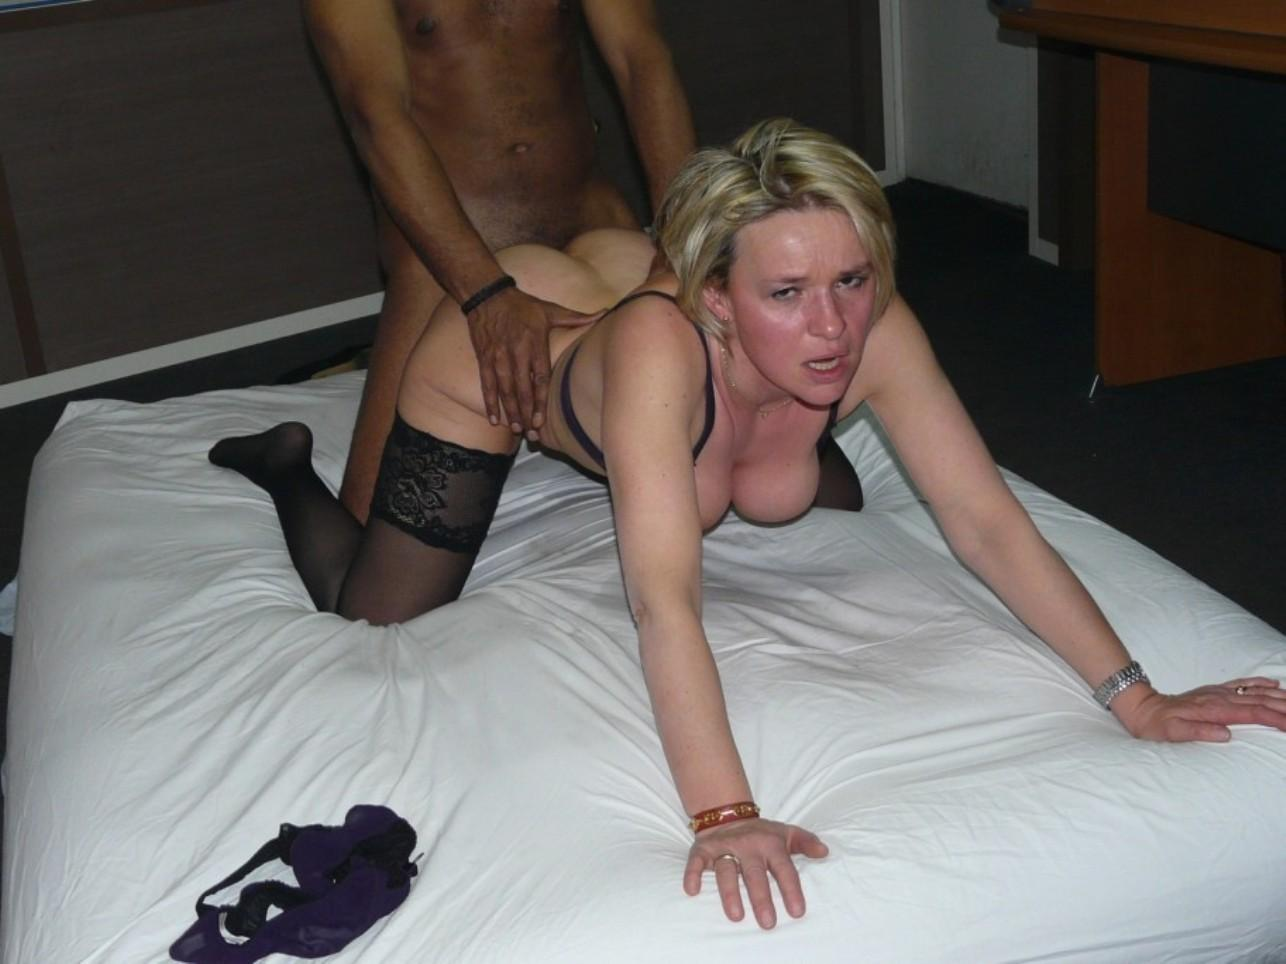 Wild MILF getting hard fucked in her tight cunt. Hot blonde women gets her shaved pussy doggy style fucked